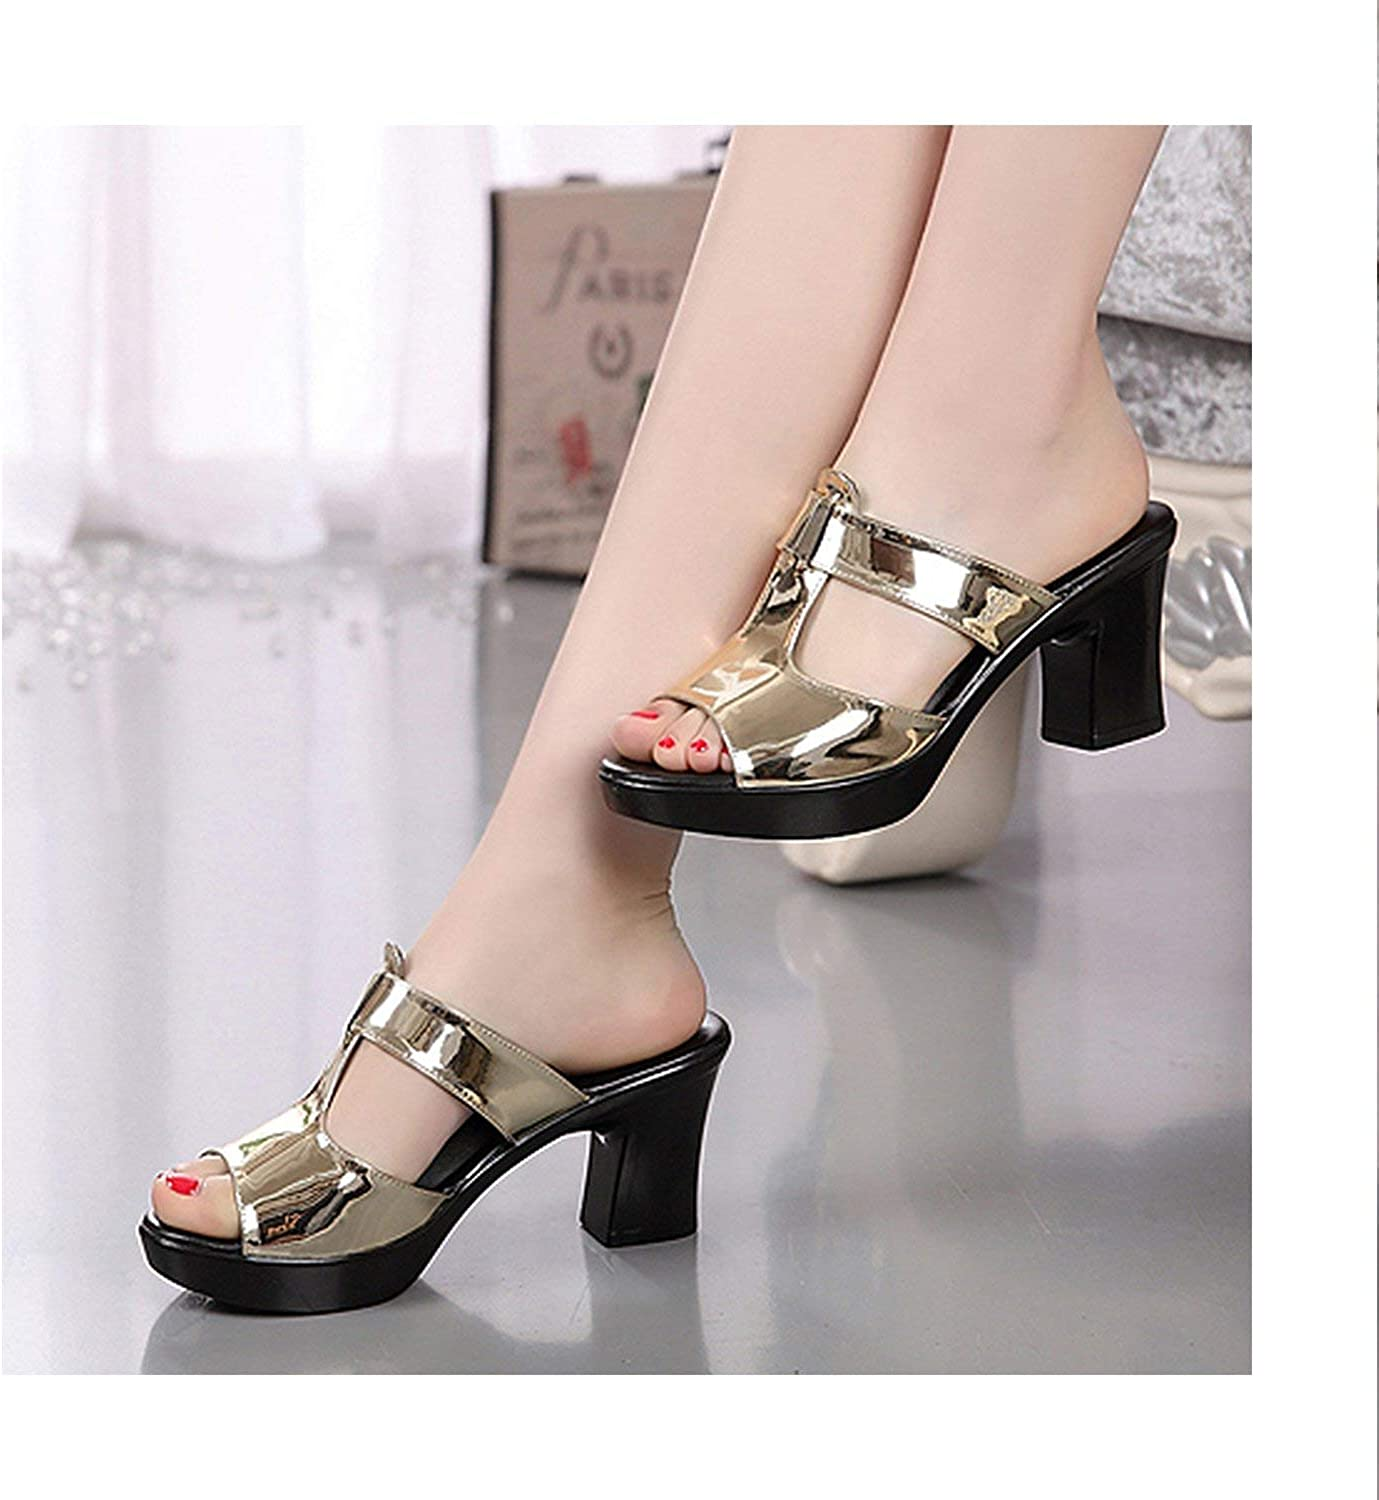 HANBINGPO Fashion Women's shoes Patent Leather Slippers Female Sandals Casual Slip-On Fretwork Cut-Outs Mixed colors